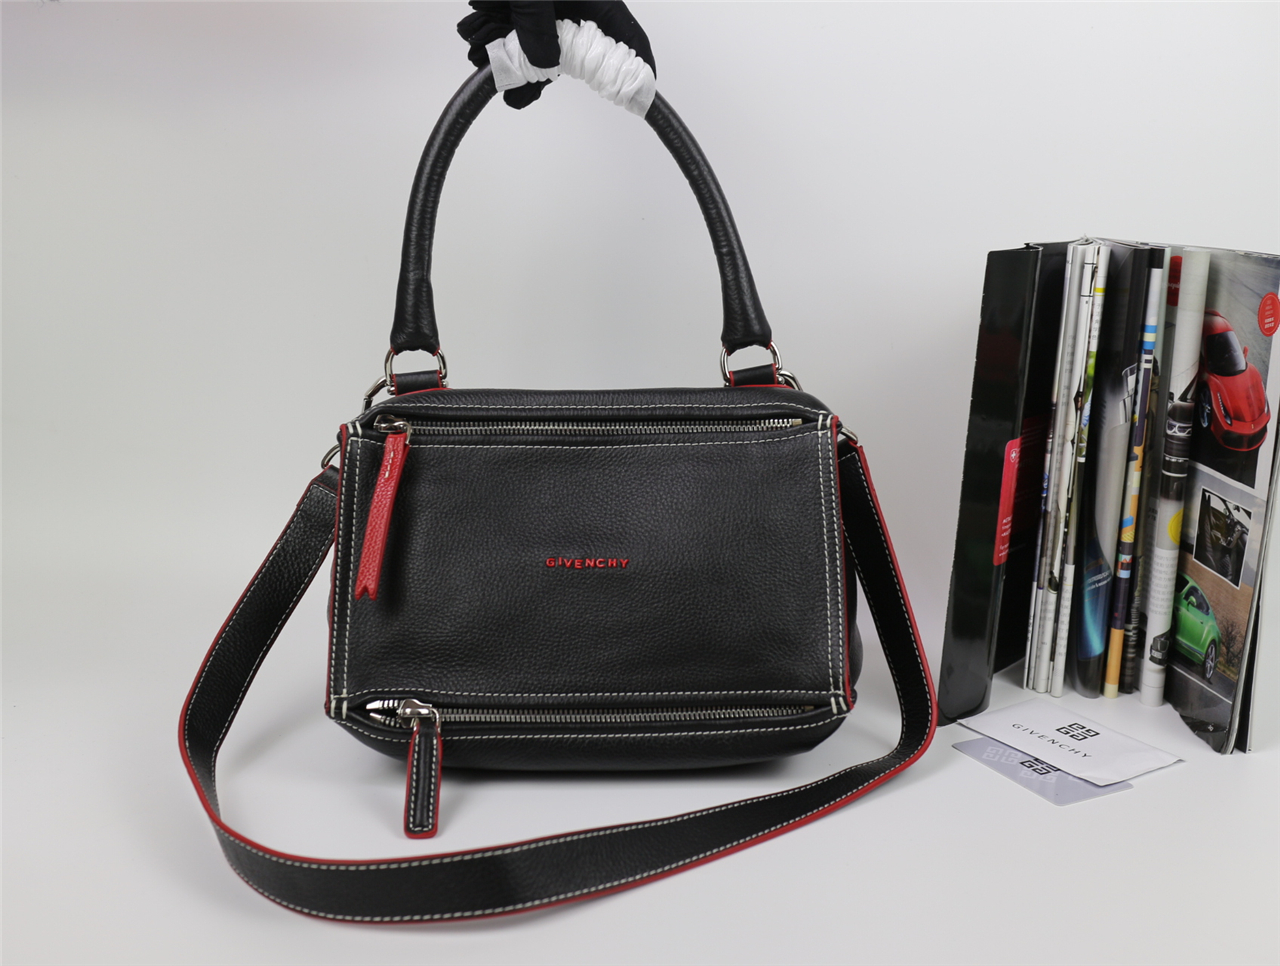 4c546ce4ba4e Replica Givenchy Medium Pandora Bag in Black Lambskin with Red Piping